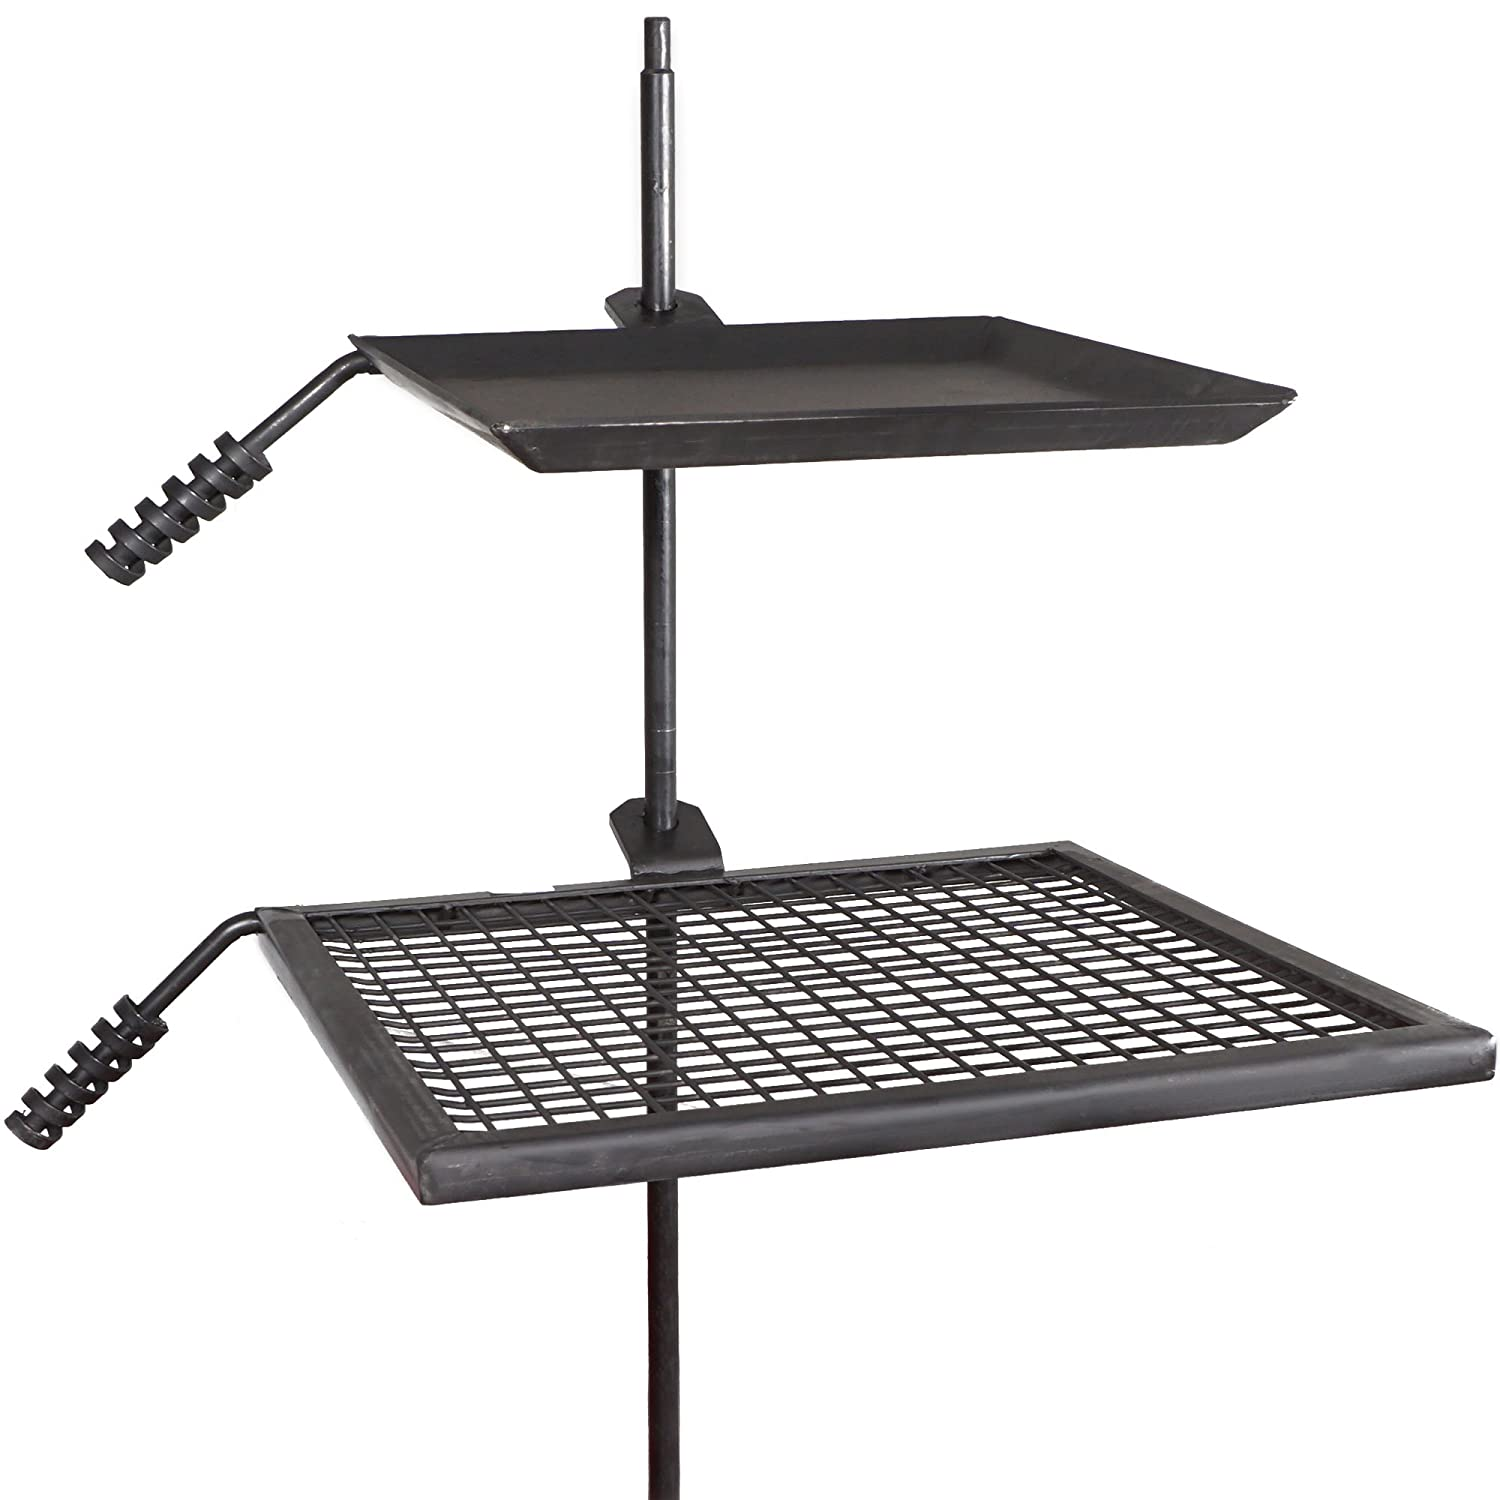 Amazon.com : Titan Campfire Adjustable Swivel Grill Cooking Grate Griddle  40